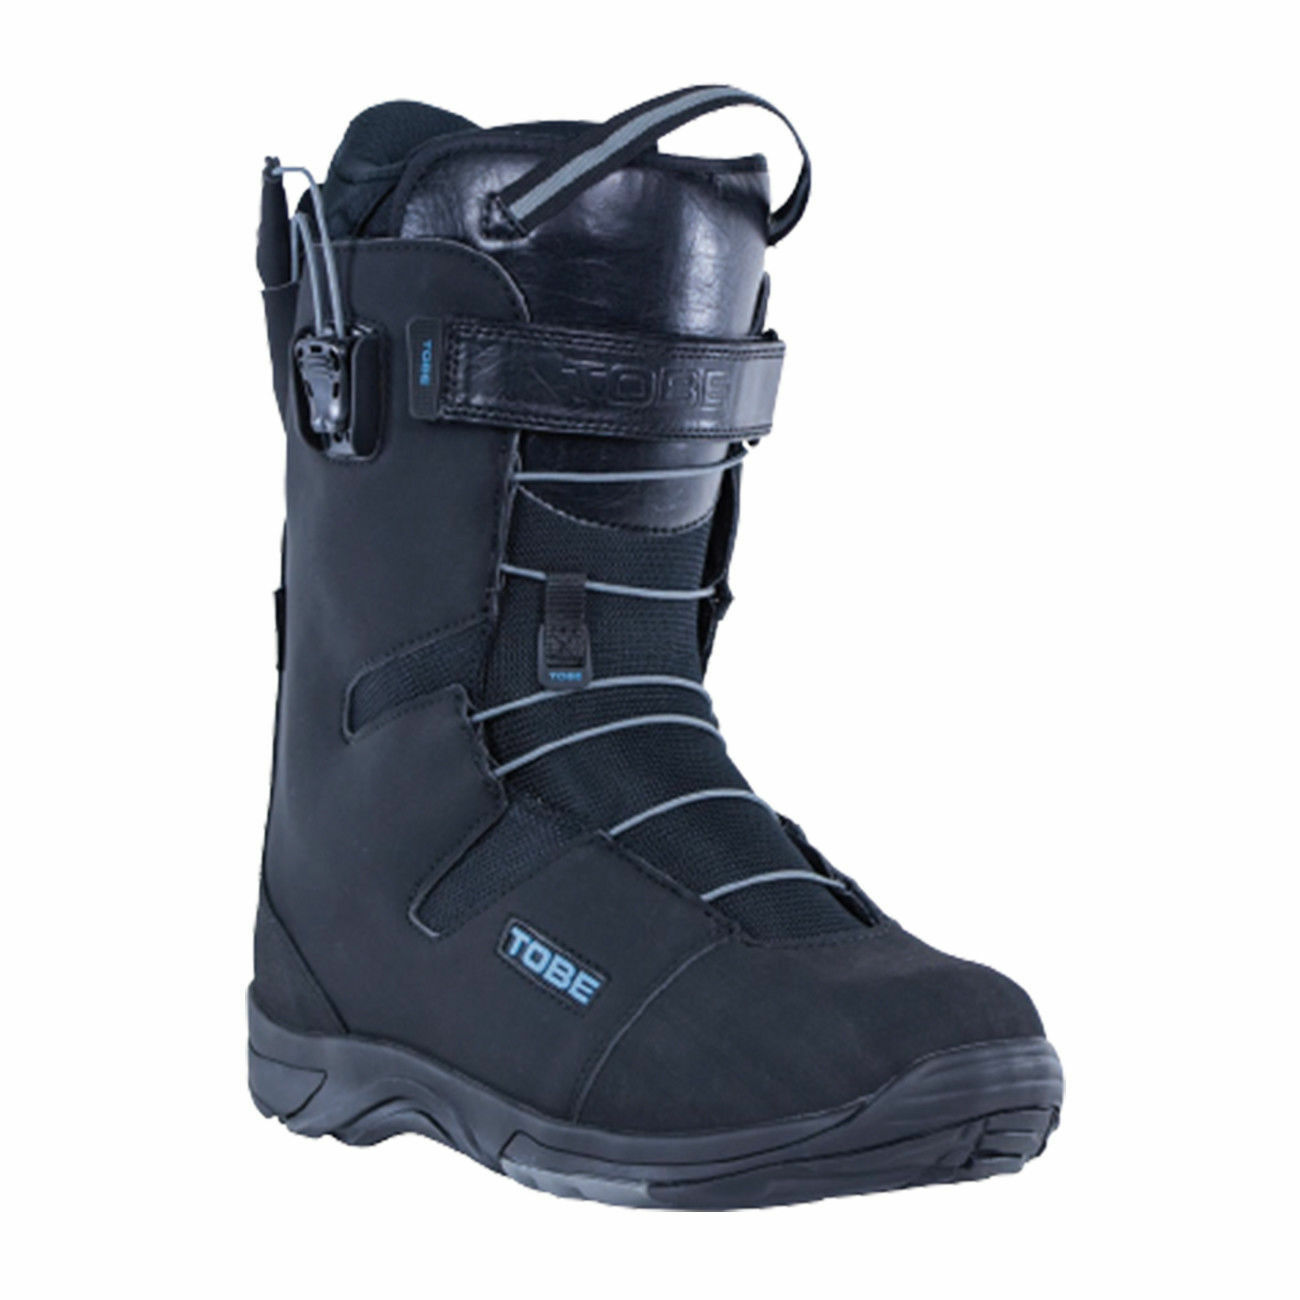 BOOT BLOWOUT  60% OFF  TOBE Outerwear - Contego Boot Speed Men's sz 9, 12  Boots